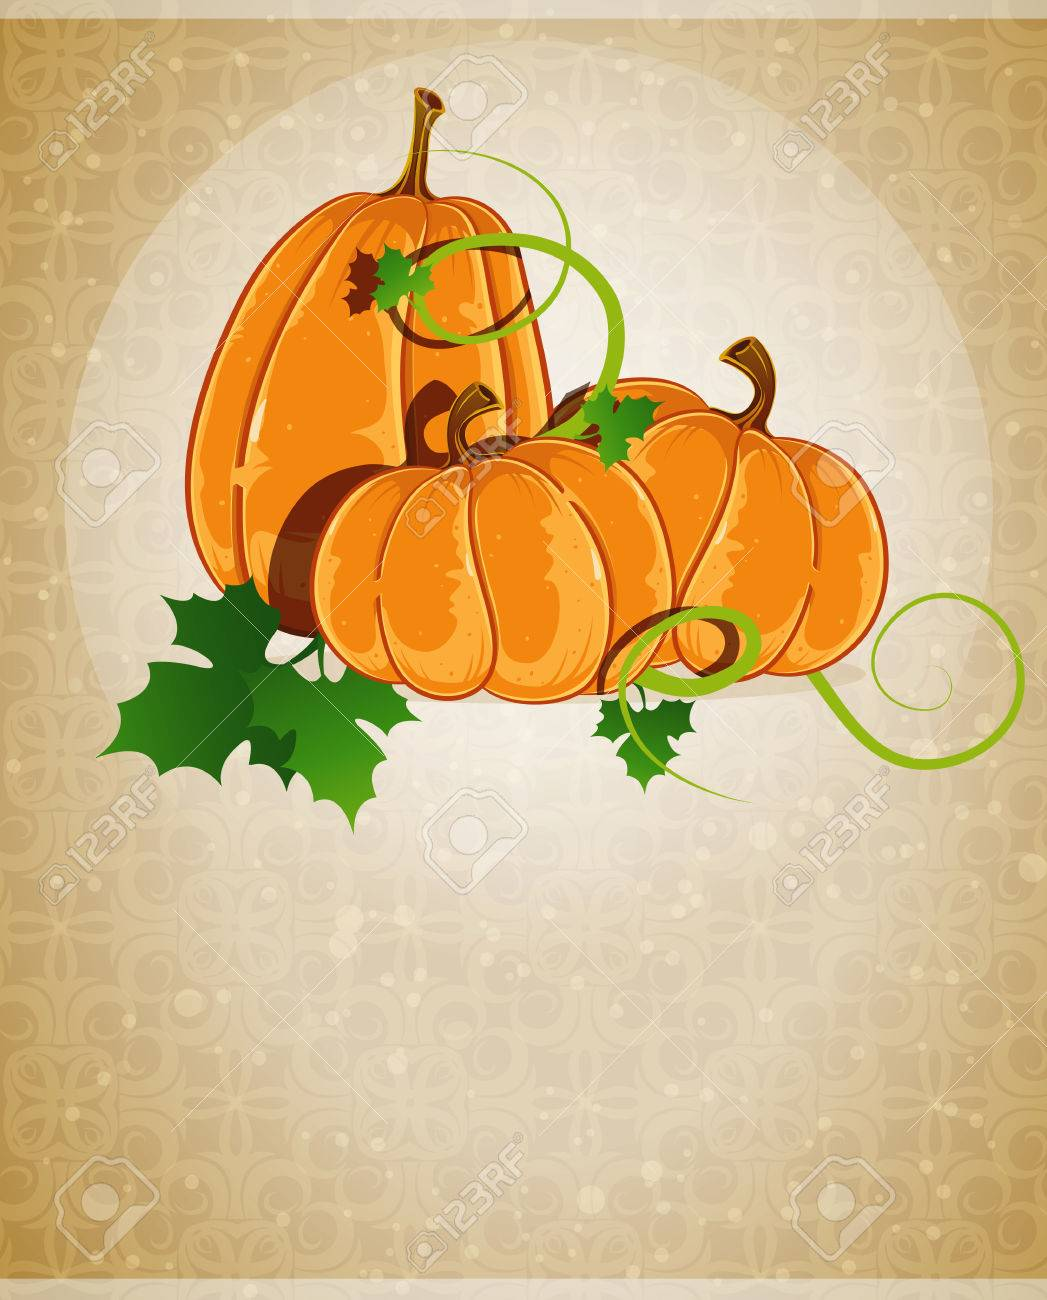 Three pumpkins with sprouts and leaves on a beige background with retro patterns - 22498490